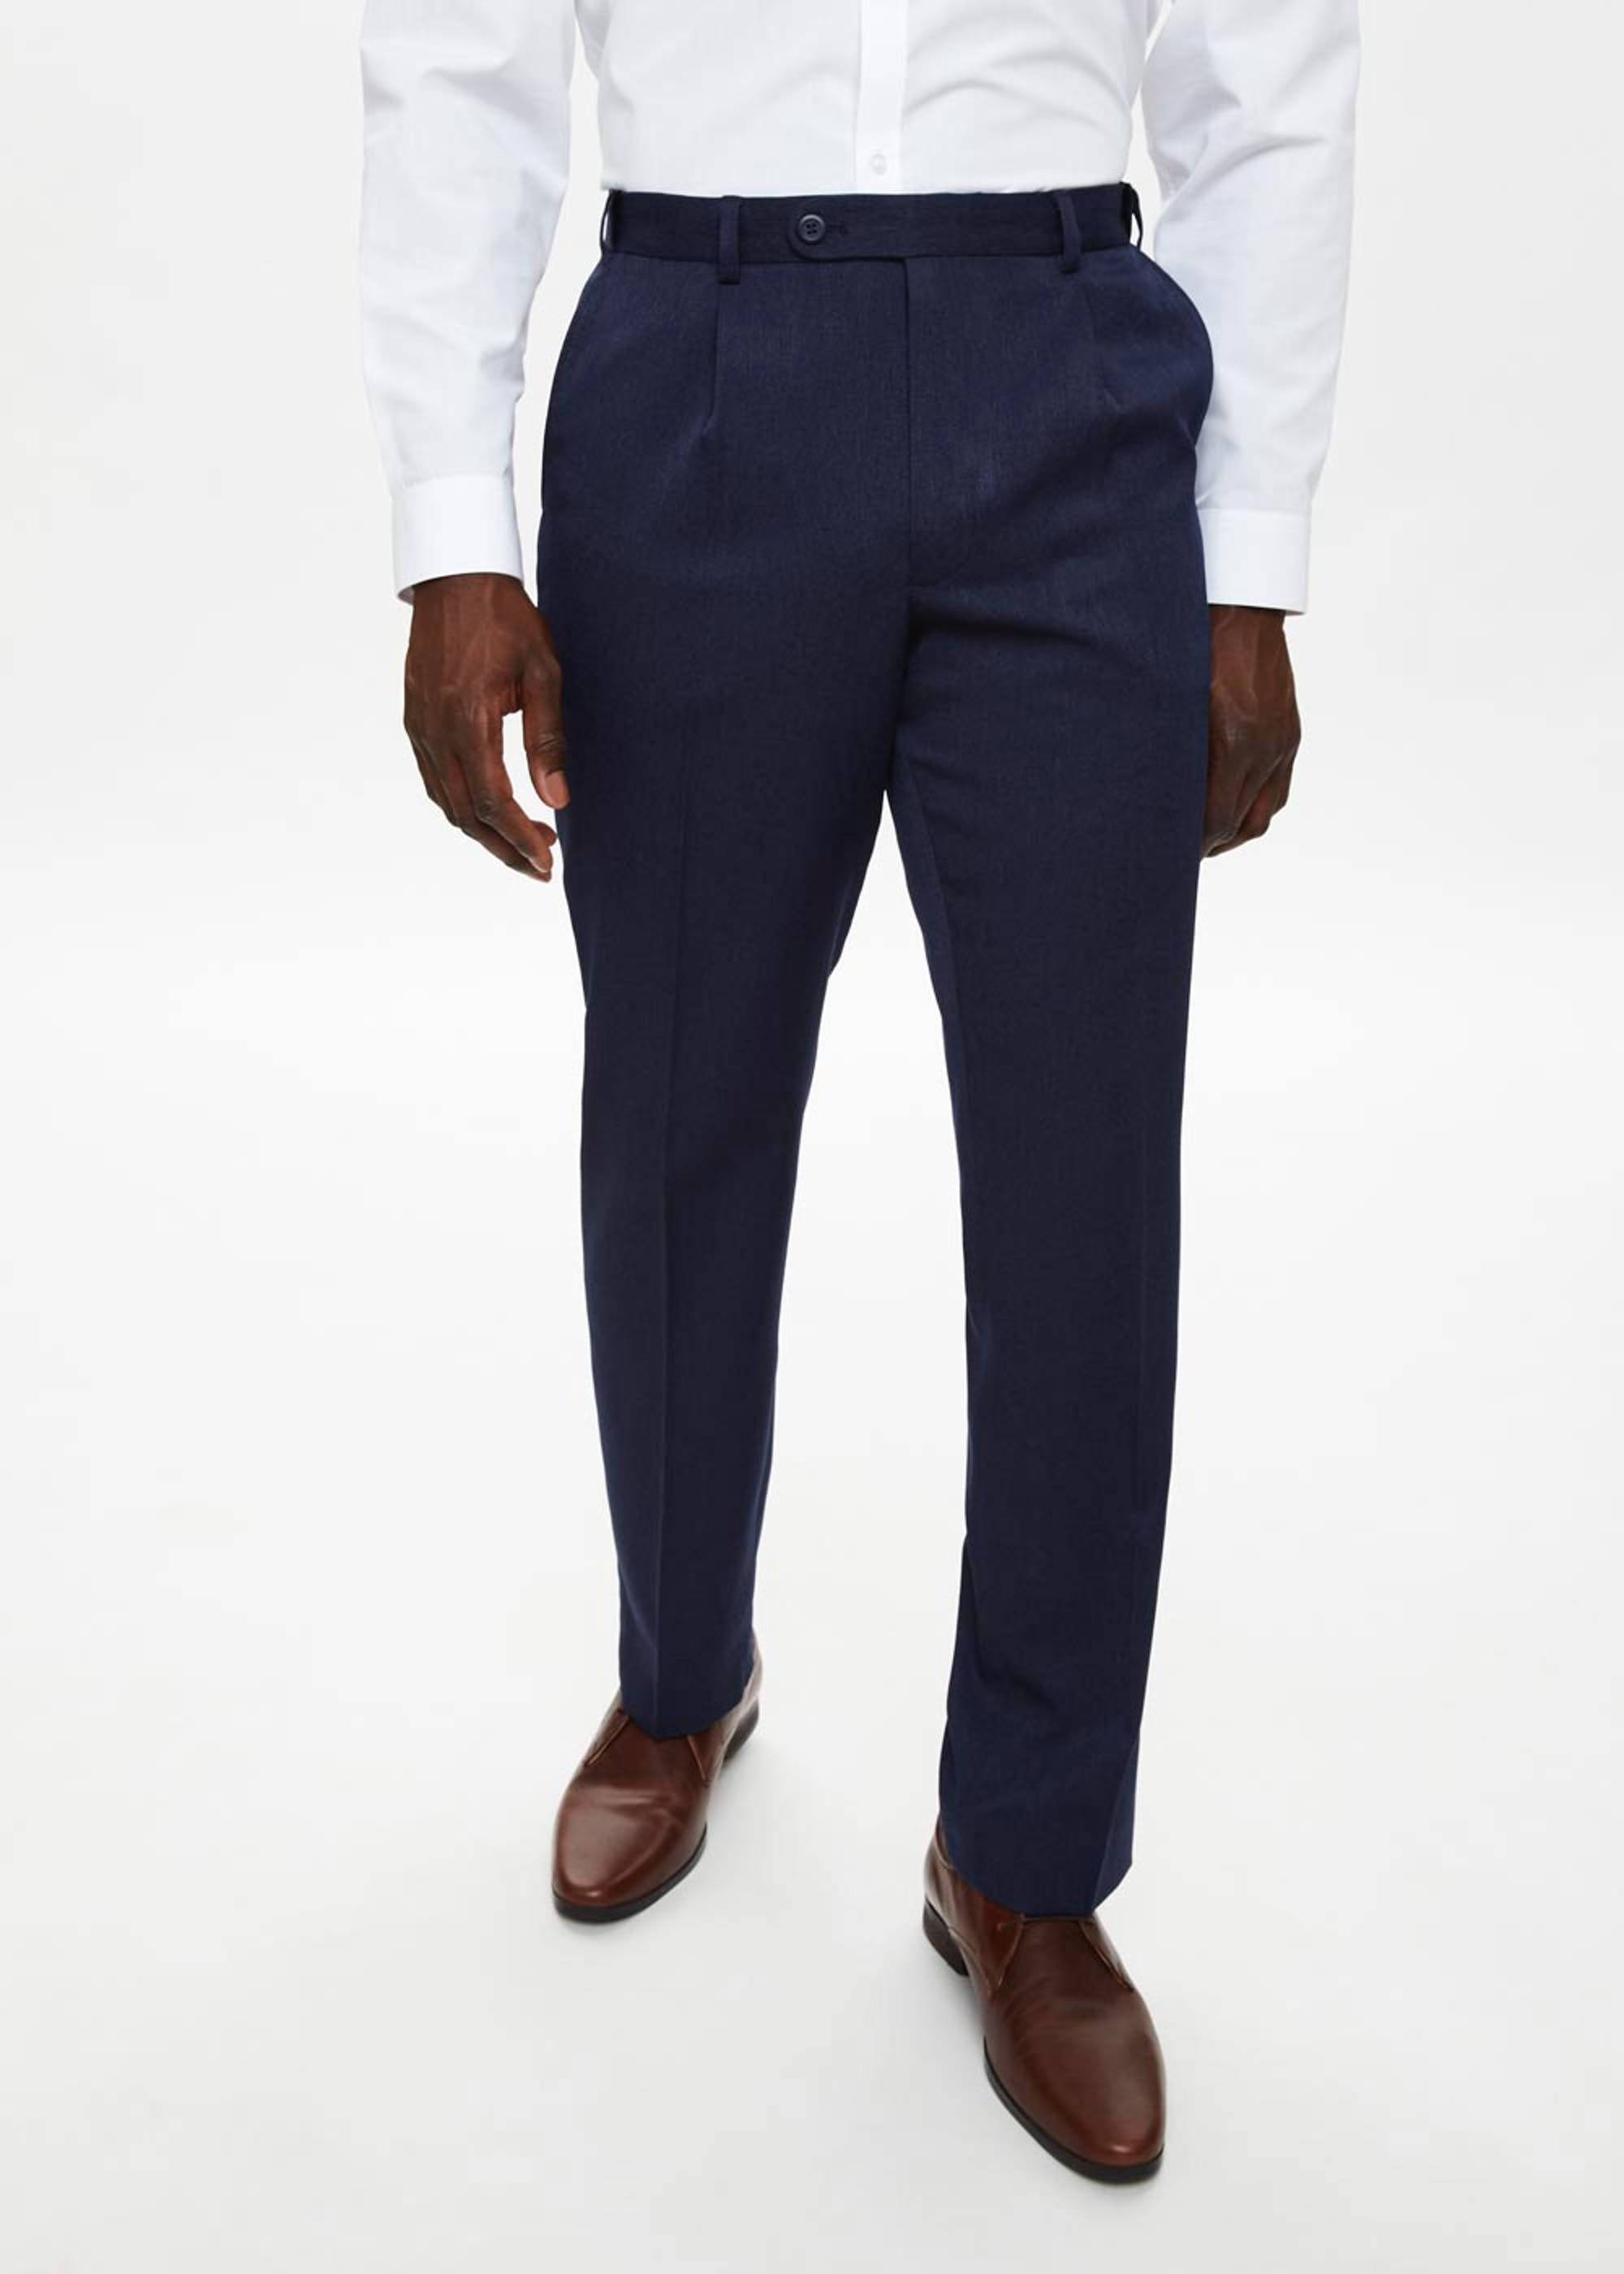 Taylor & Wright Brushed Twill Flexi Waist Trousers Navy q0Hyna